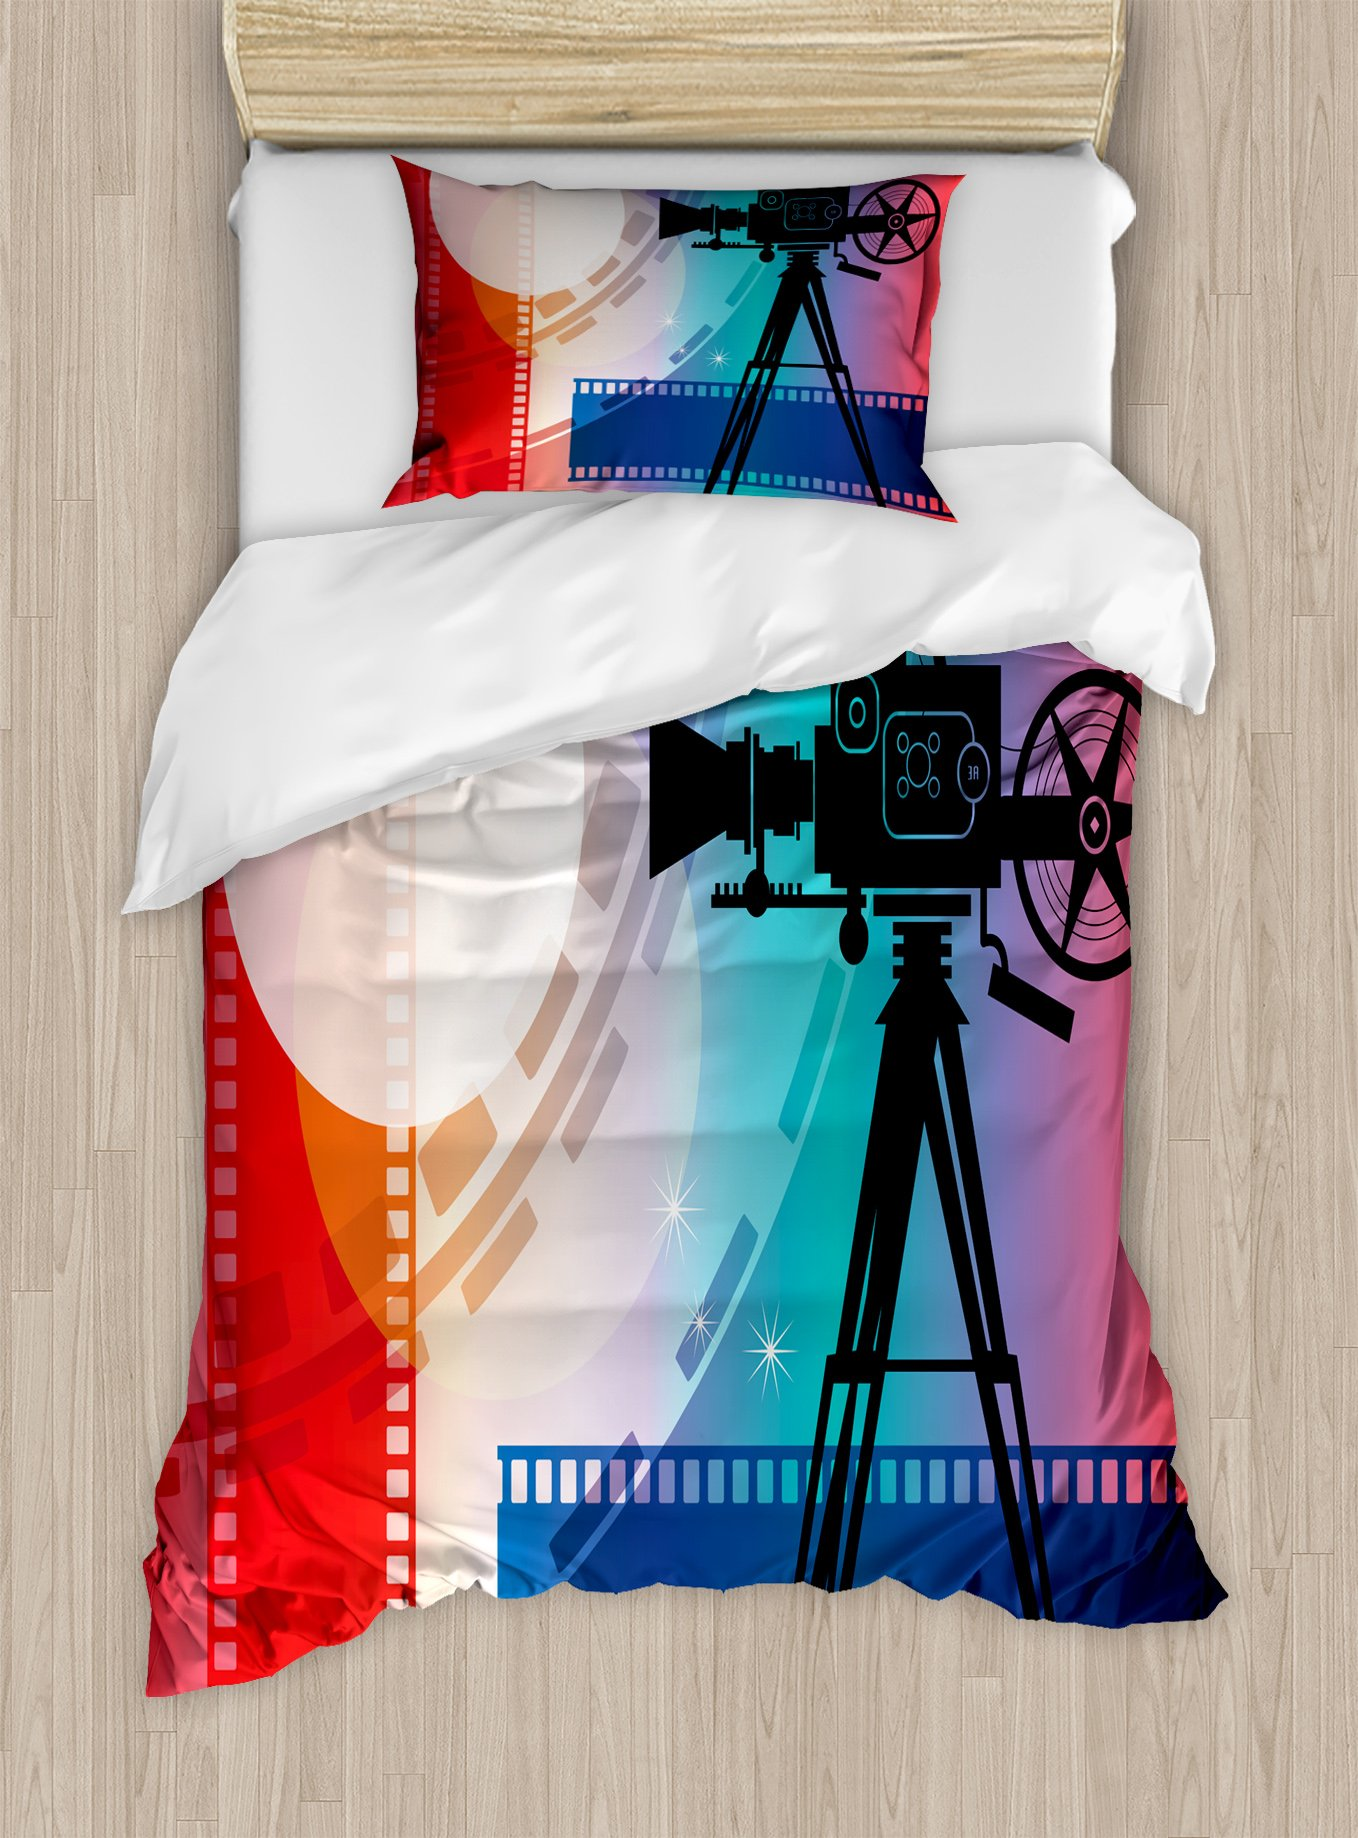 Ambesonne Cinema Twin Size Duvet Cover Set, Colorful Projector Silhouette with Movie Reel Vintage Design Entertainment Theme, Decorative 2 Piece Bedding Set with 1 Pillow Sham, Multicolor by Ambesonne